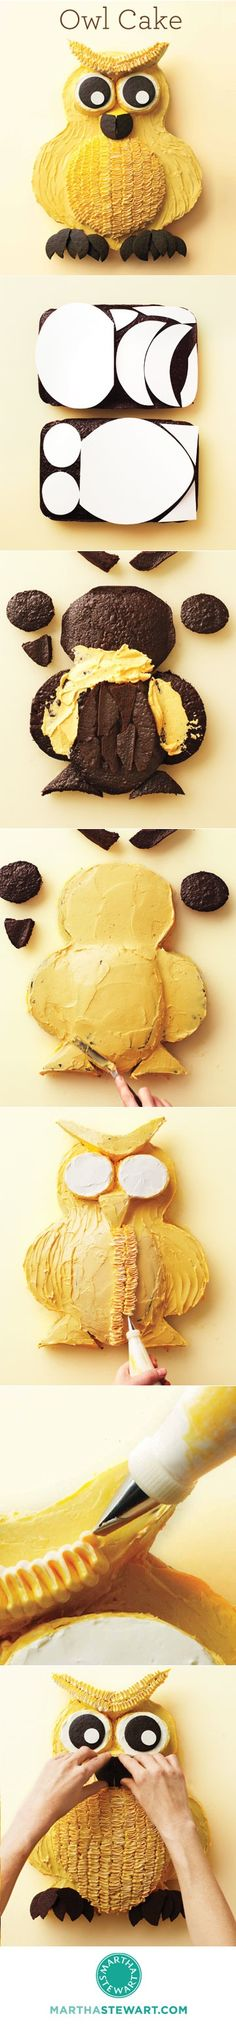 Owl Cake How-To Tutorial